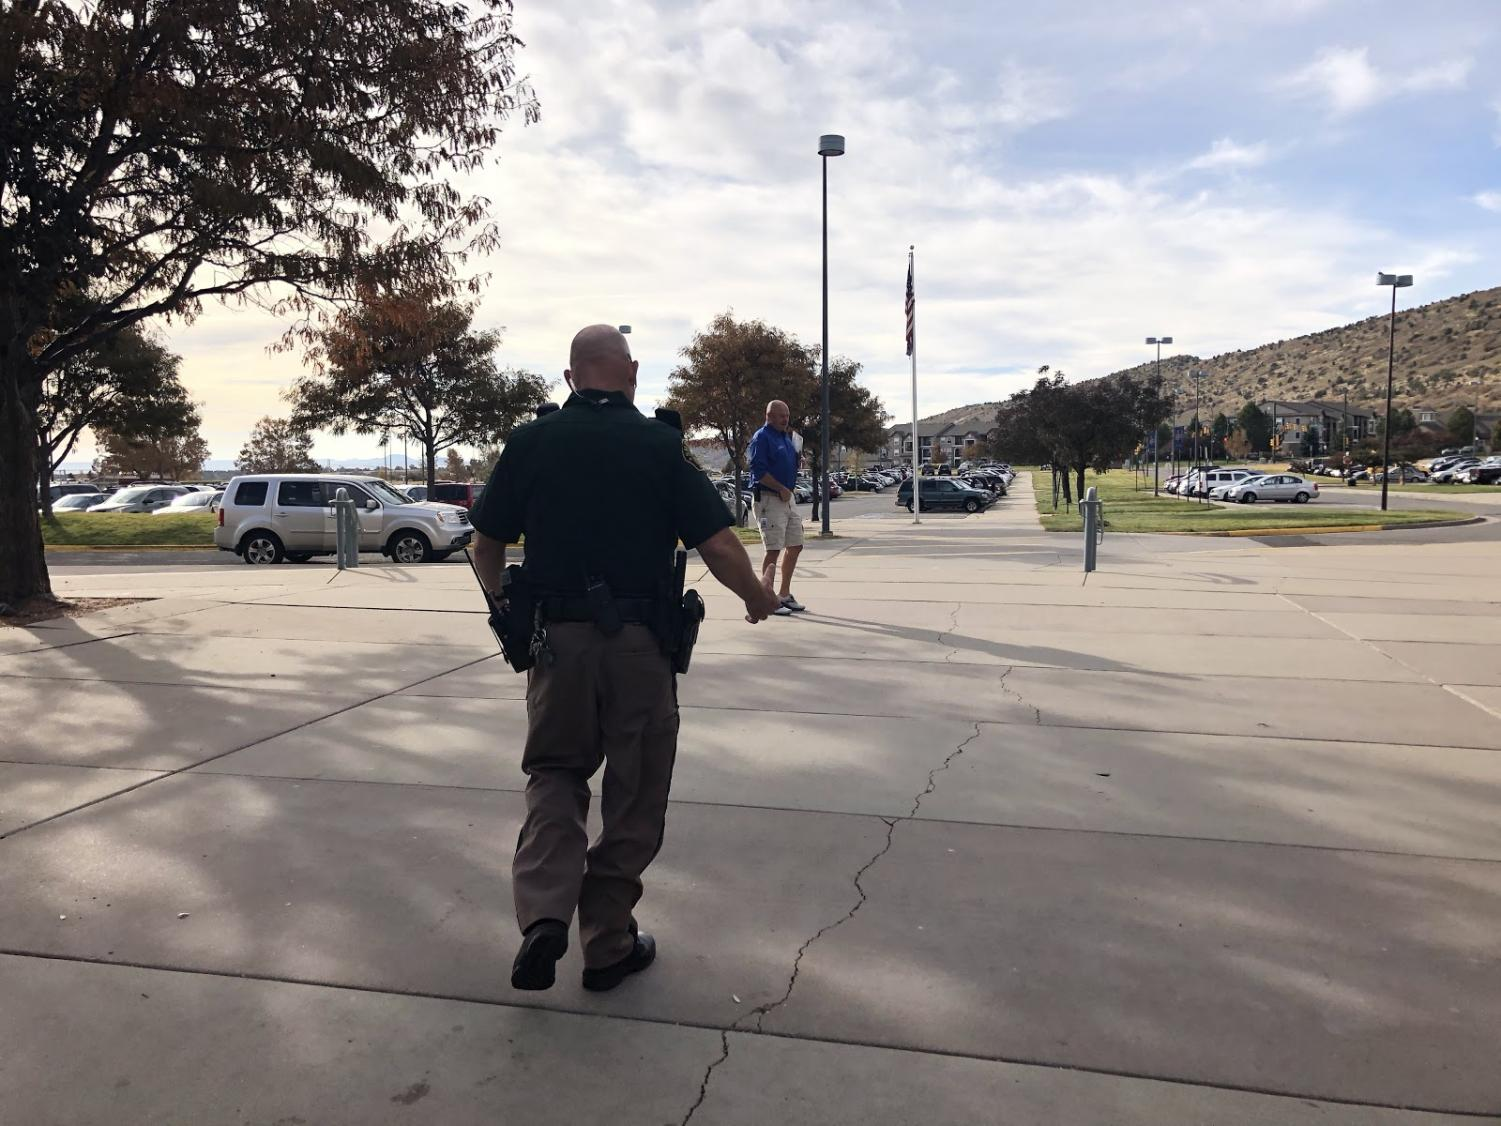 Dave Bruening, SRO officer at Dakota, meeting with another security member outside of Dakota Ridge High School. Both men were relaxed when speaking with fellow coworkers, calmly taking care of the situation at hand.